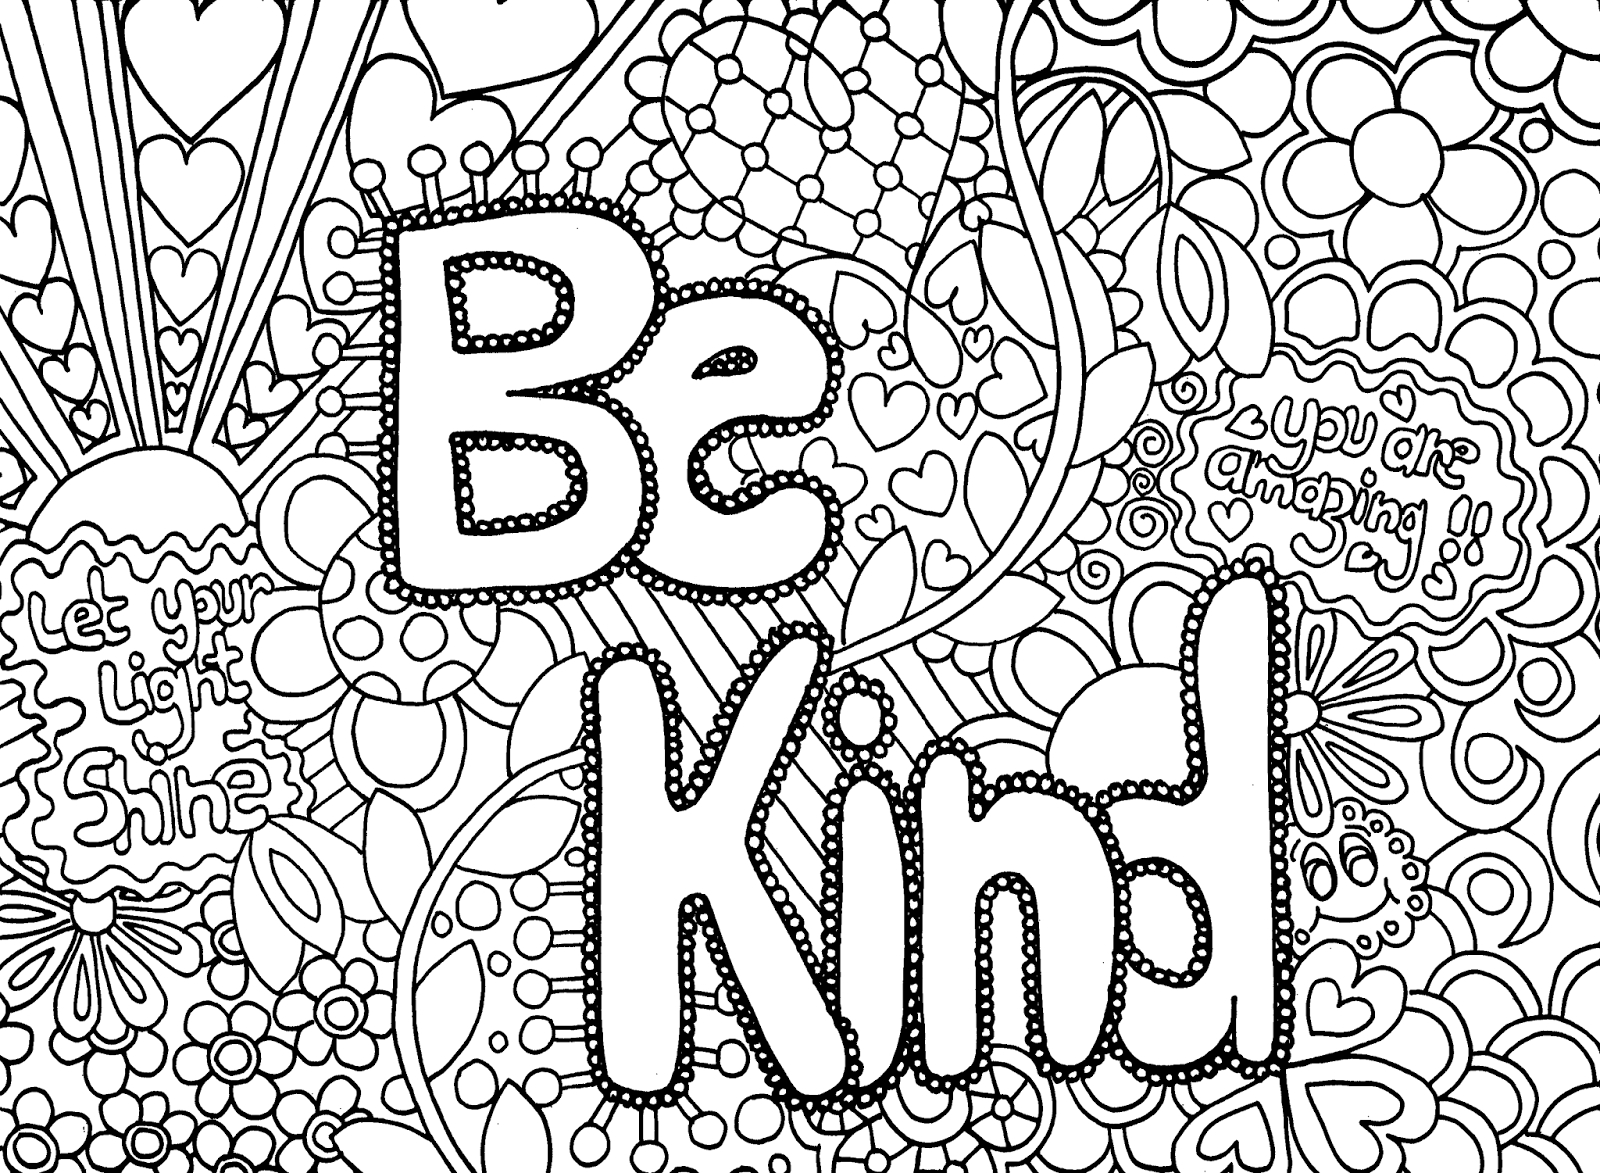 Coloring Pages For Teenagers To Print Then Marvelous Coloring Pages For Teenagers To Print - Florida Coloring Pages